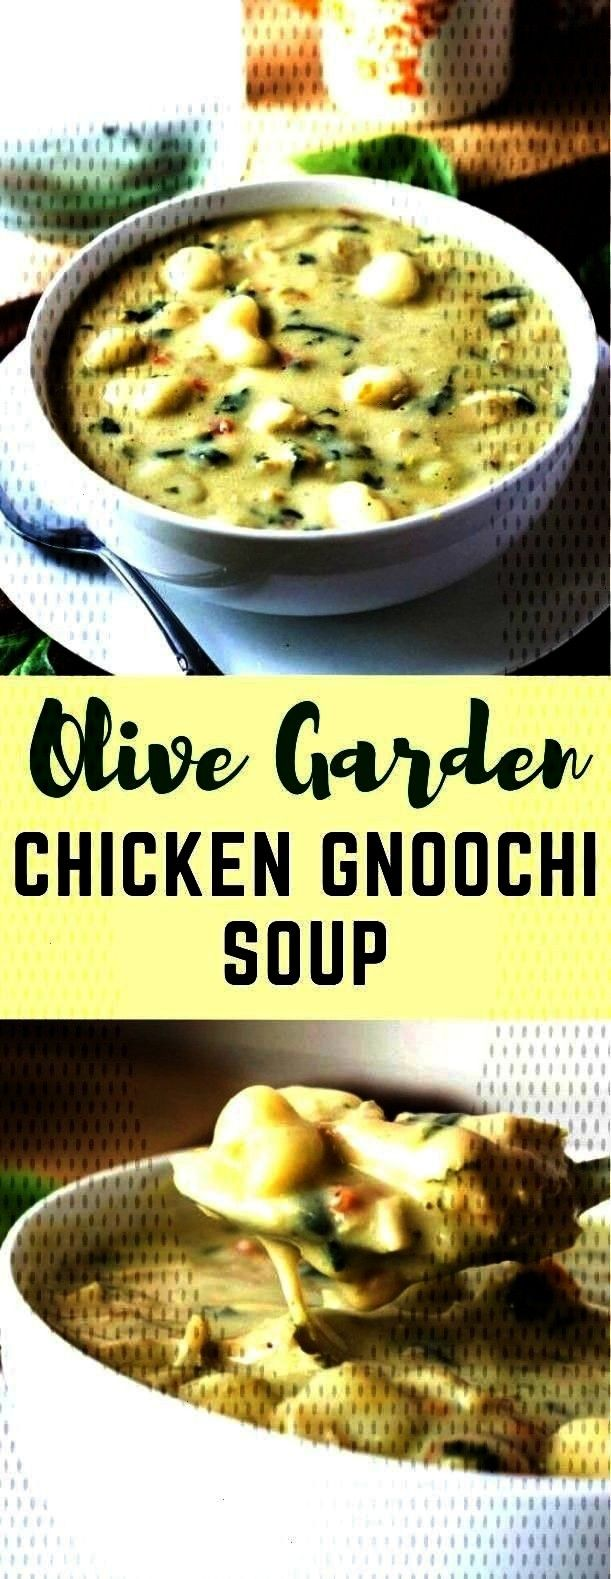 GARDEN CHIC So easy my 12 year old can do it Watch us make this delicious one pan keto meal in just a few short minutes Its one of my kids favorite low carb meals No need...